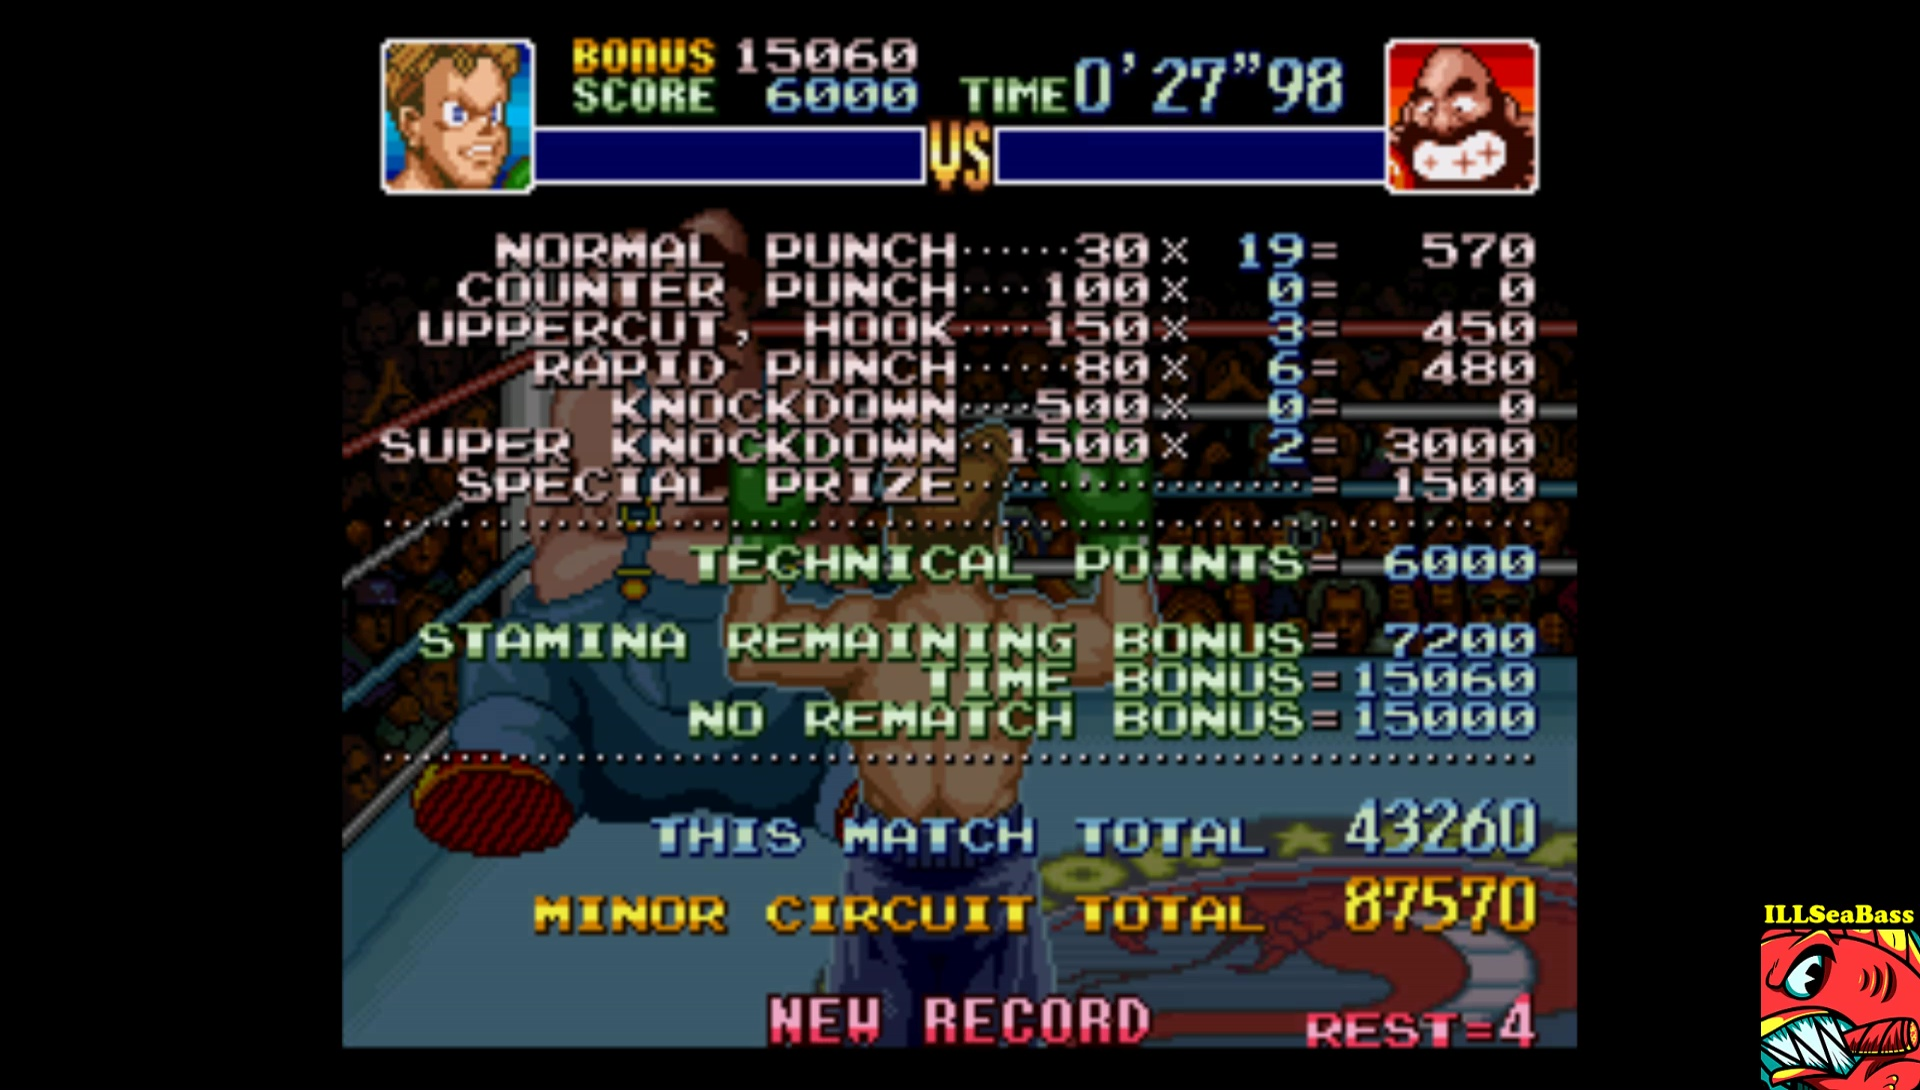 ILLSeaBass: Super Punch-Out!! [Bear Hugger] (SNES/Super Famicom Emulated) 43,260 points on 2017-09-08 19:15:40